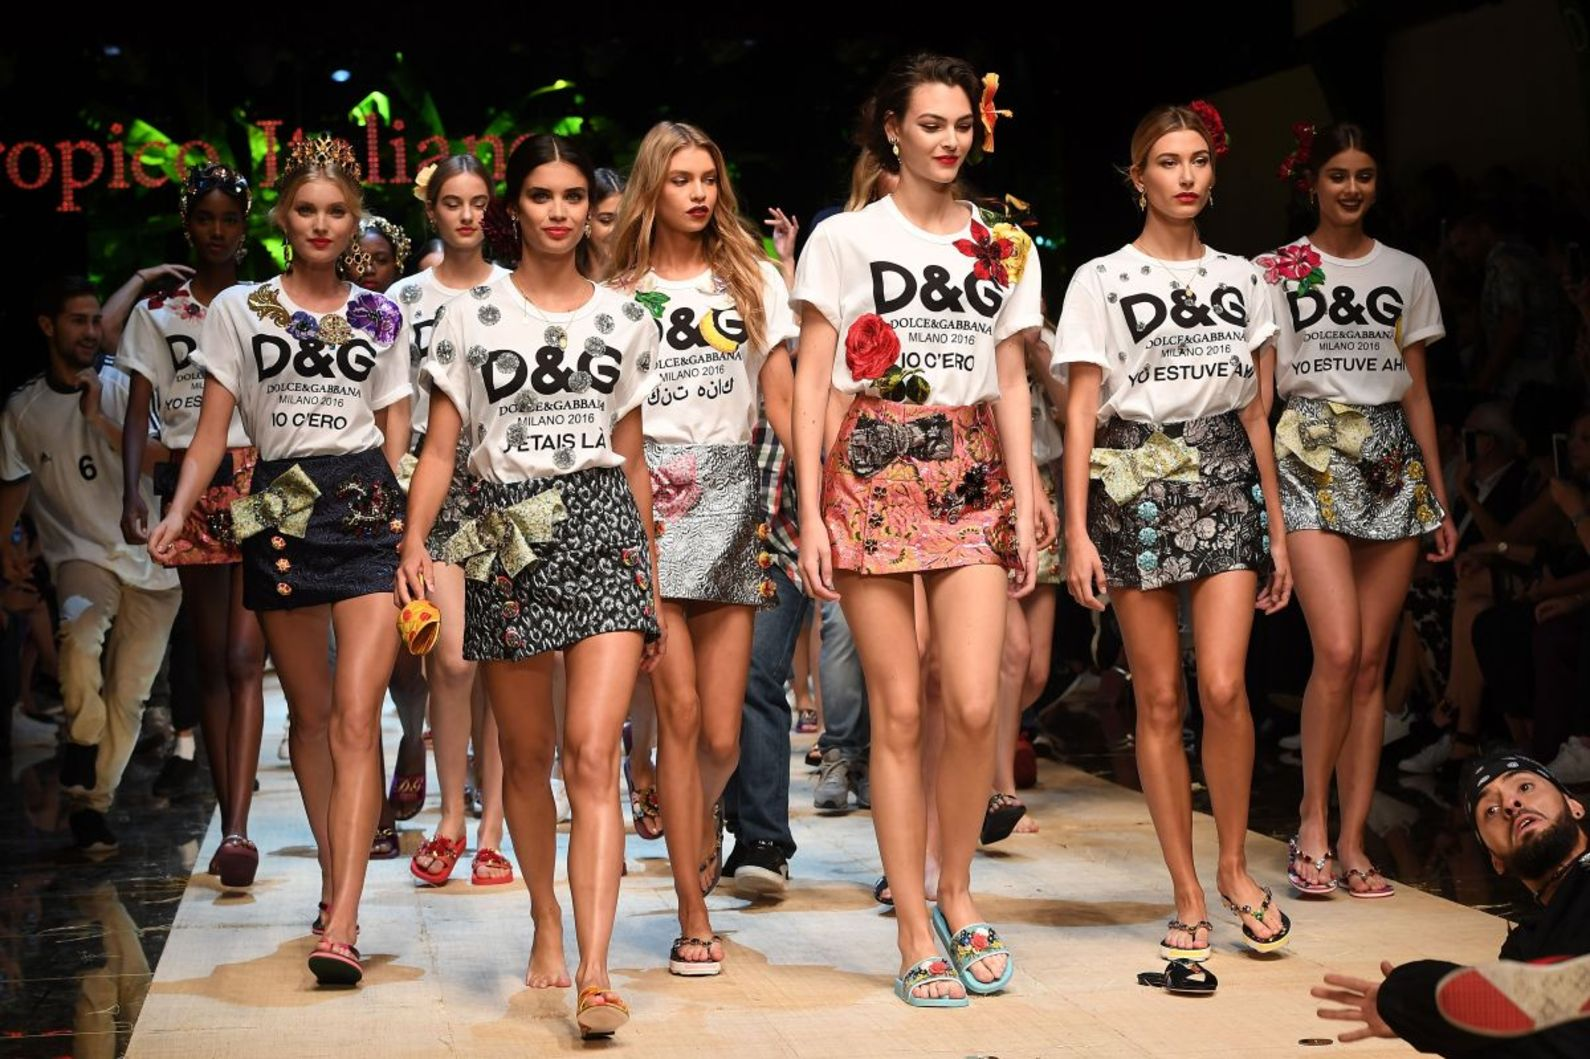 Dolce Gabbana uses Fake Logos as Inspiration for new Iconic Tees dolce gabbana Dolce Gabbana uses Fake Logos as Inspiration for new Iconic Tees Dolce Gabanna uses Fake Logos as Inspiration for new Iconic Tees 1